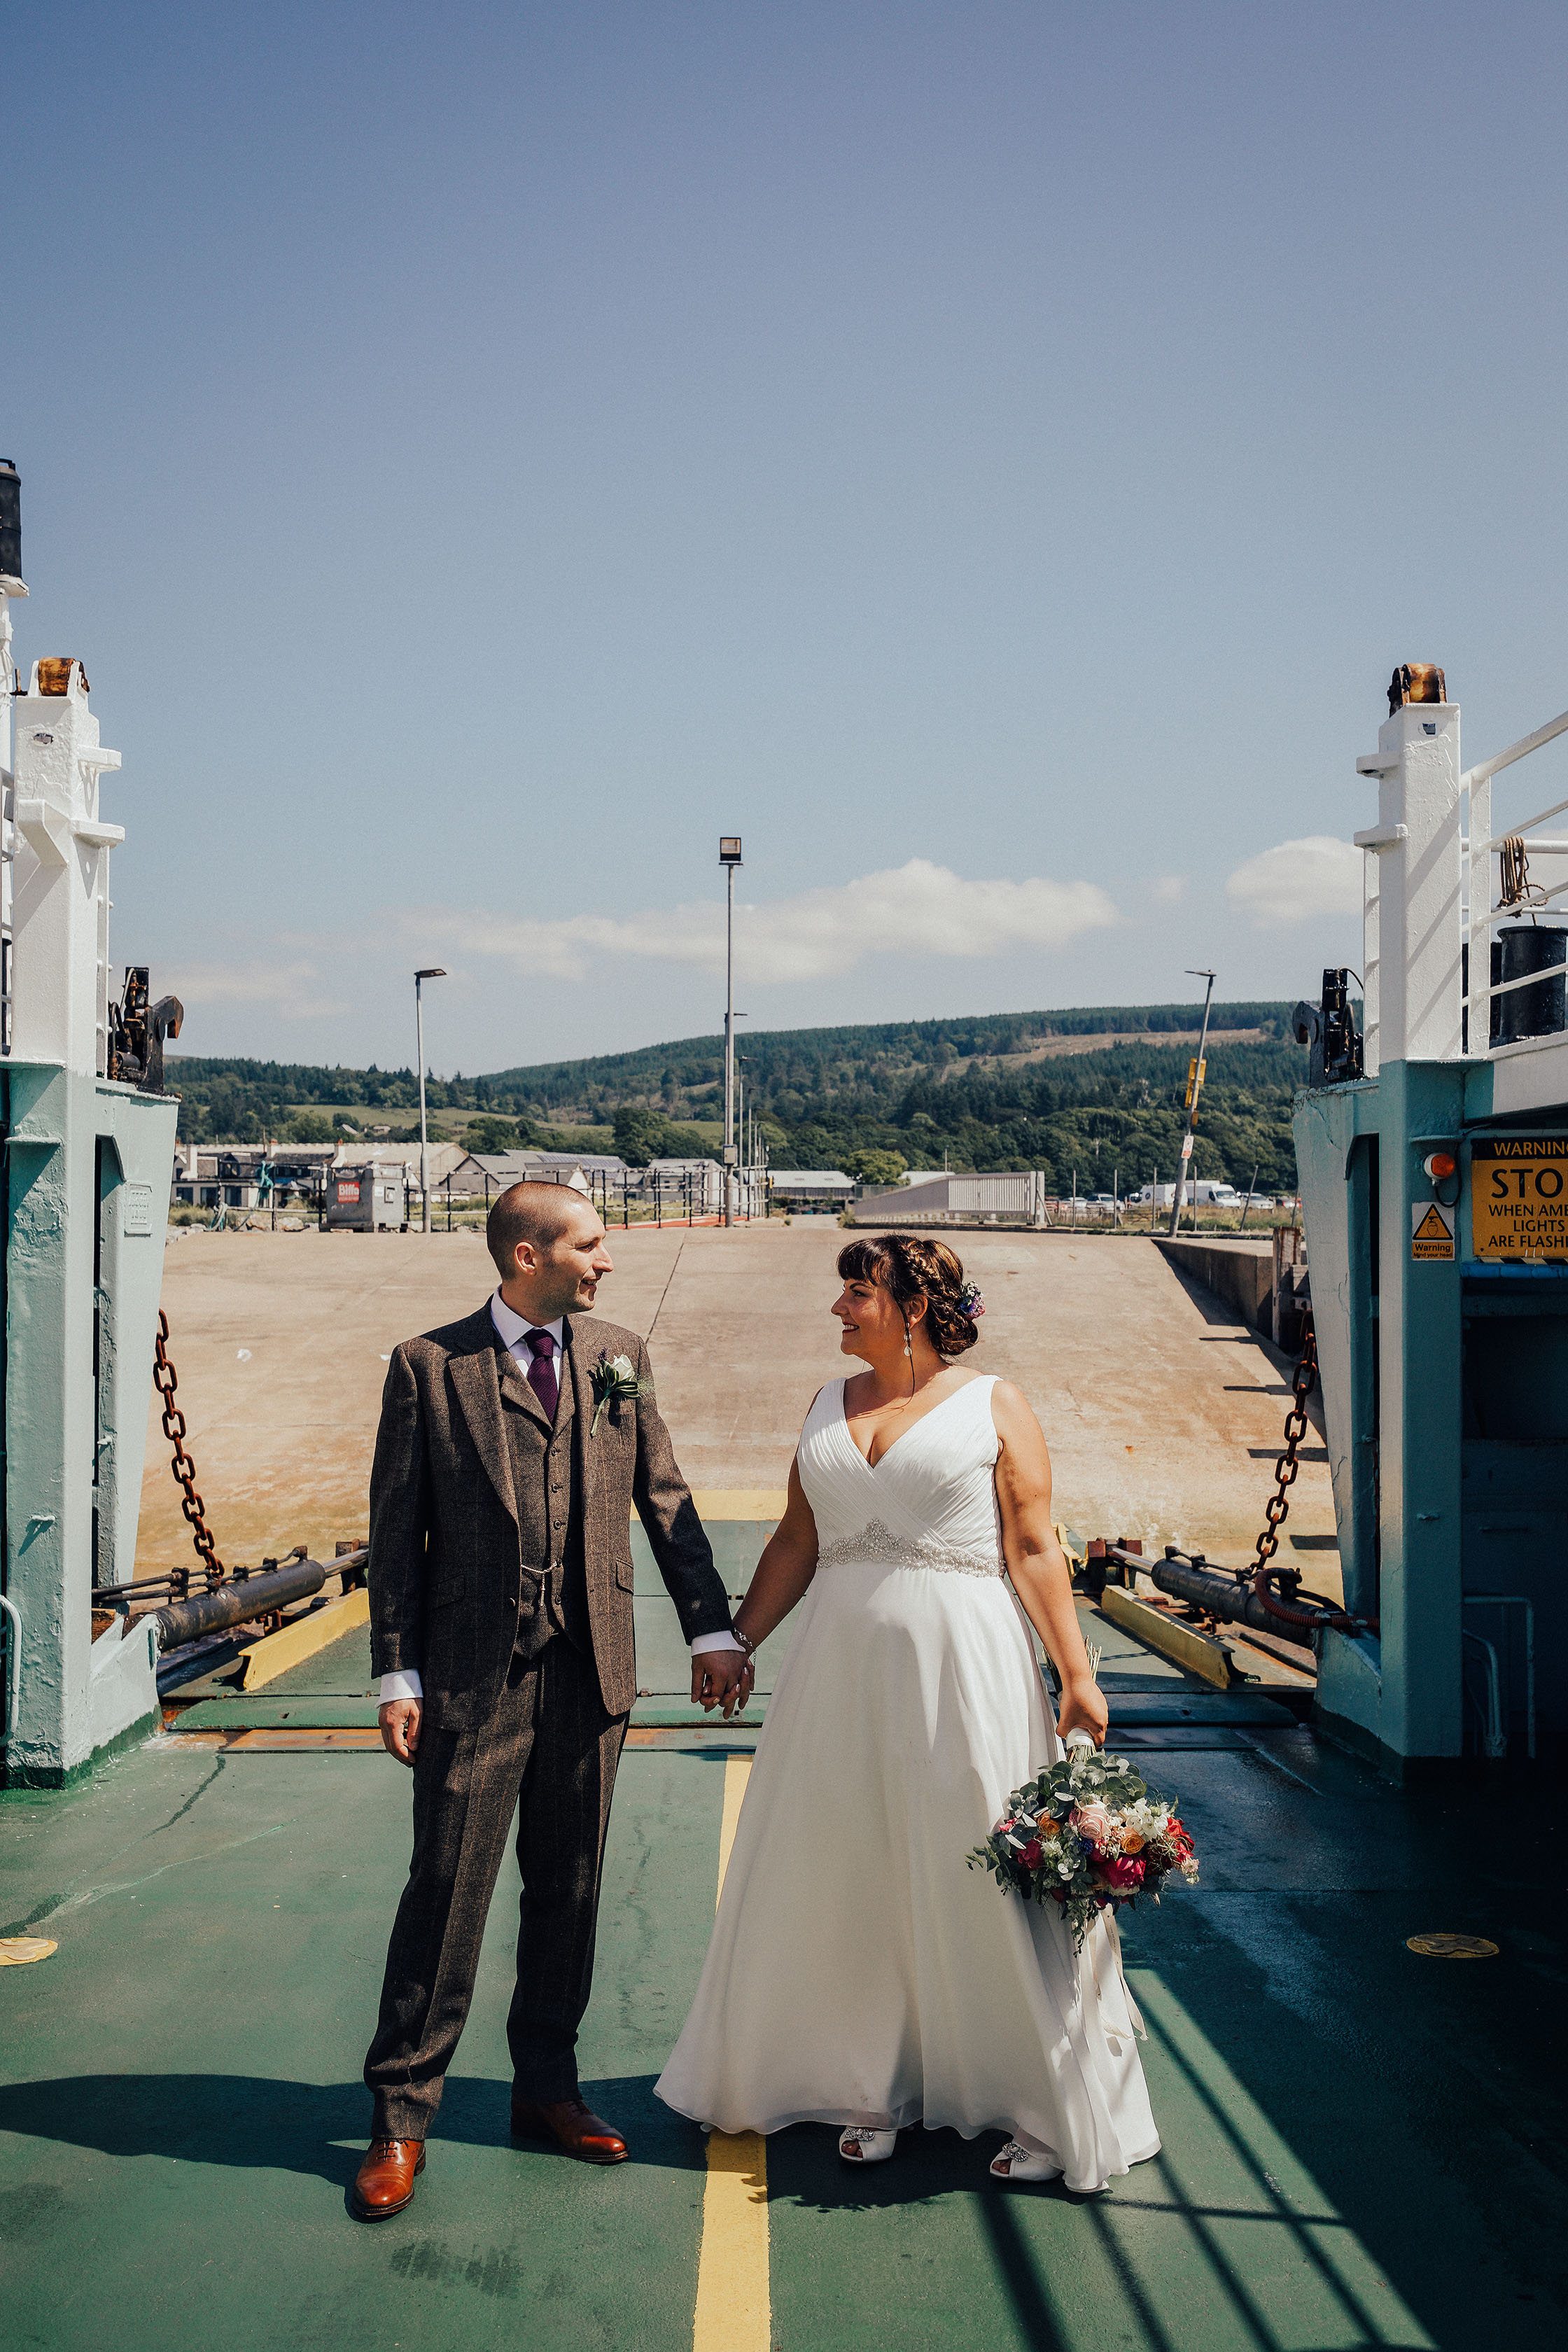 SCOTTISH_ELOPEMENT_PHOTOGRAPHER_PJ_PHILLIPS_PHOTOGRAPHY_3.jpg